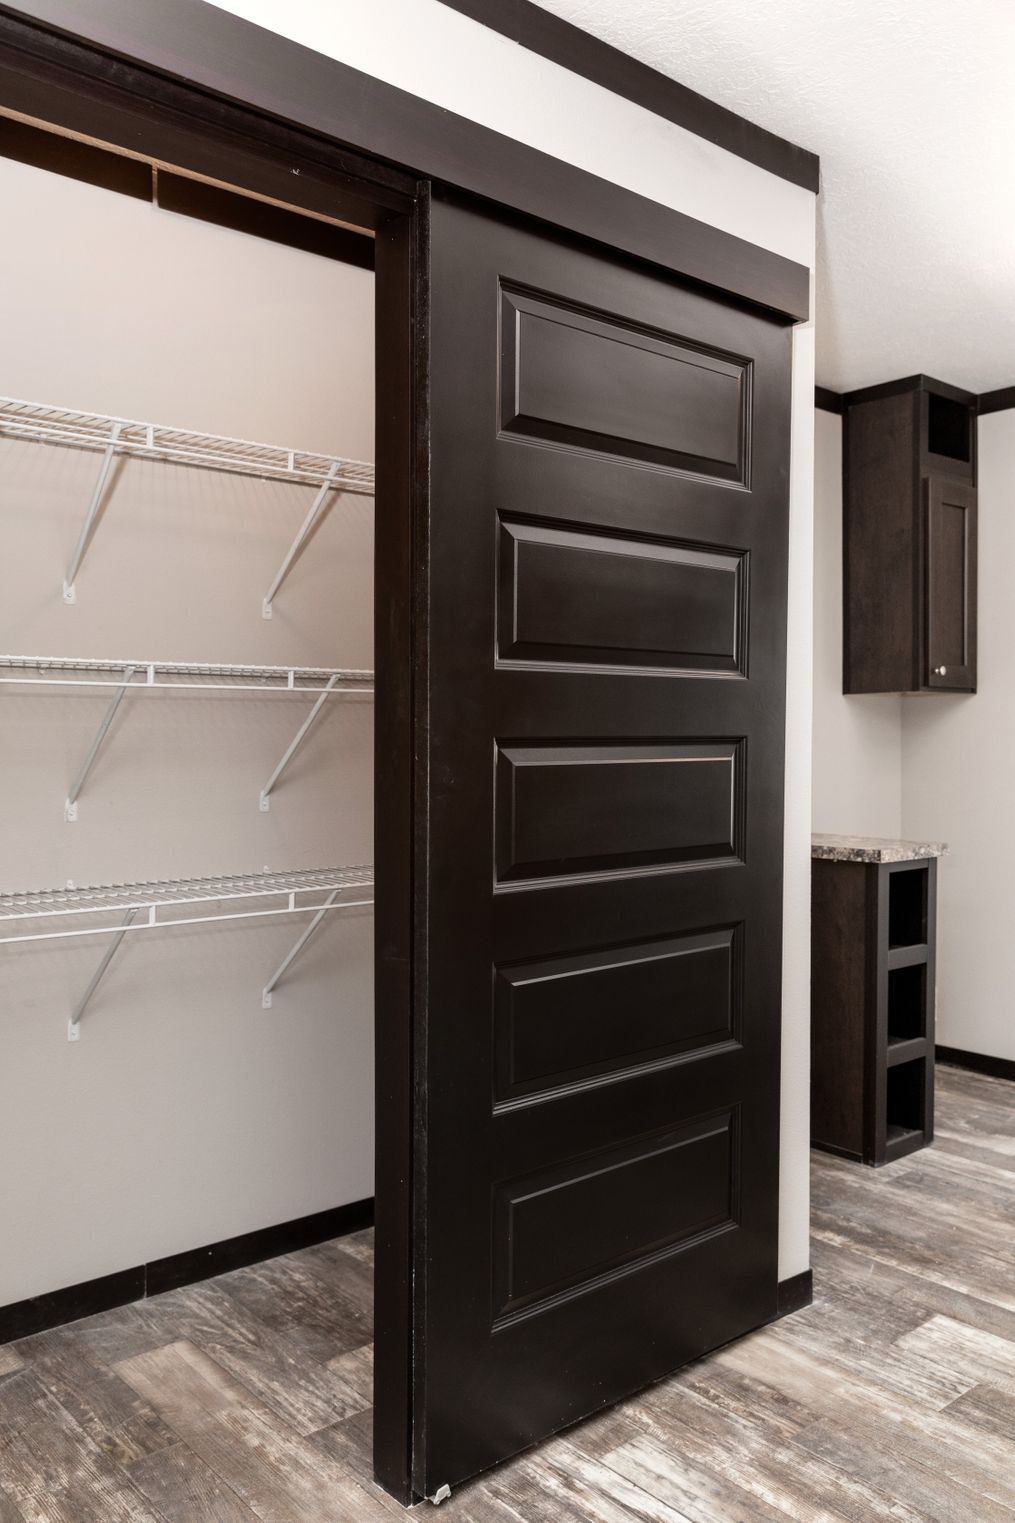 The THE FRANKLIN XL Utility Room. This Manufactured Mobile Home features 4 bedrooms and 2 baths.